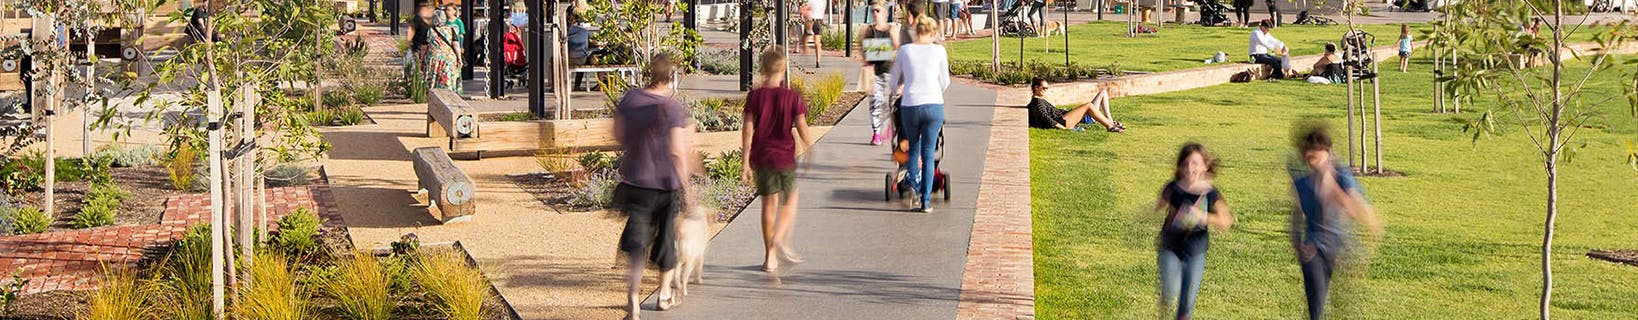 Plant 4 Bowden - people walking and sitting